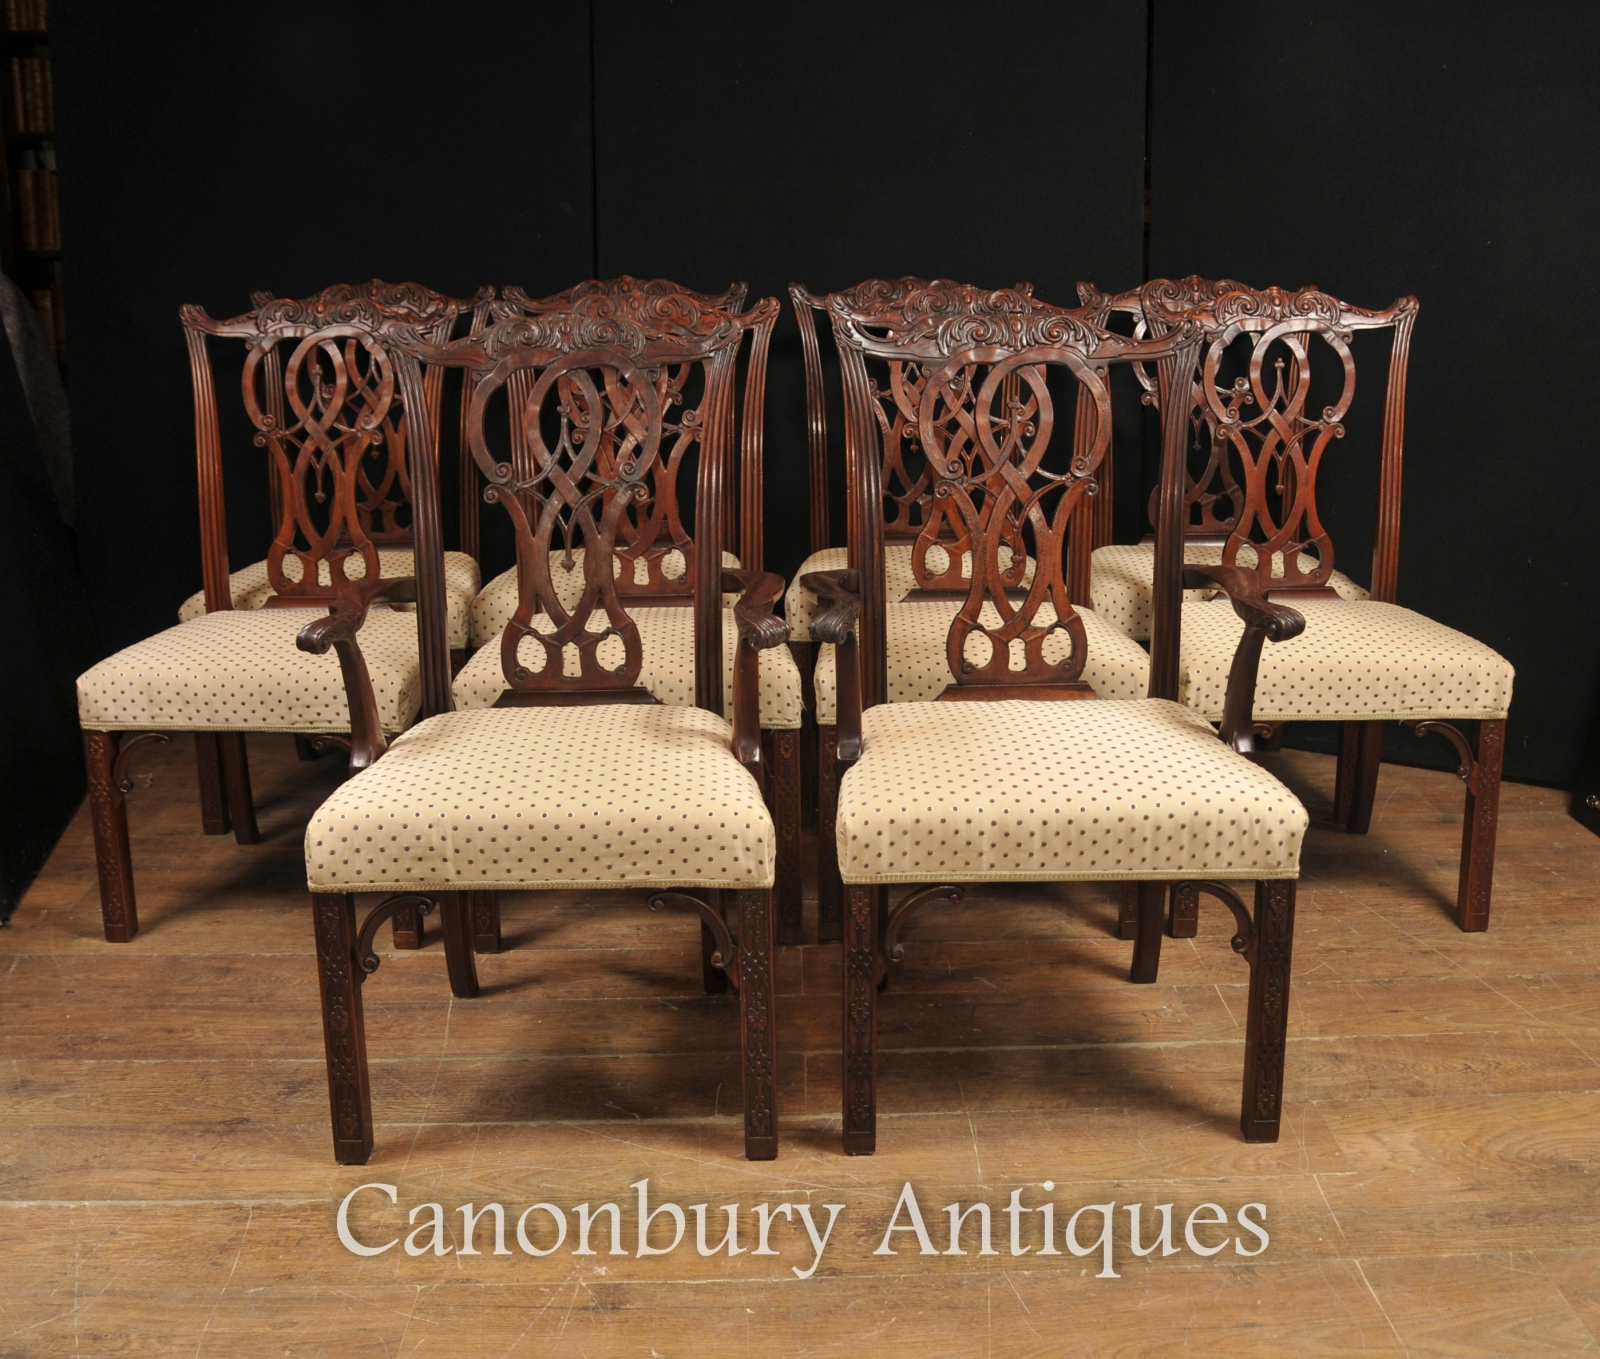 Muebles Tahilandia - Juego 10 Sillas De Comedor Chippendale De Caoba Muebles Ingleses [mjhdah]https://canonburyantiques.com/products_img/Set-10-Mahogany-Chippendale-Dining-Chairs-English-Furniture-1474353855-product-91.jpg